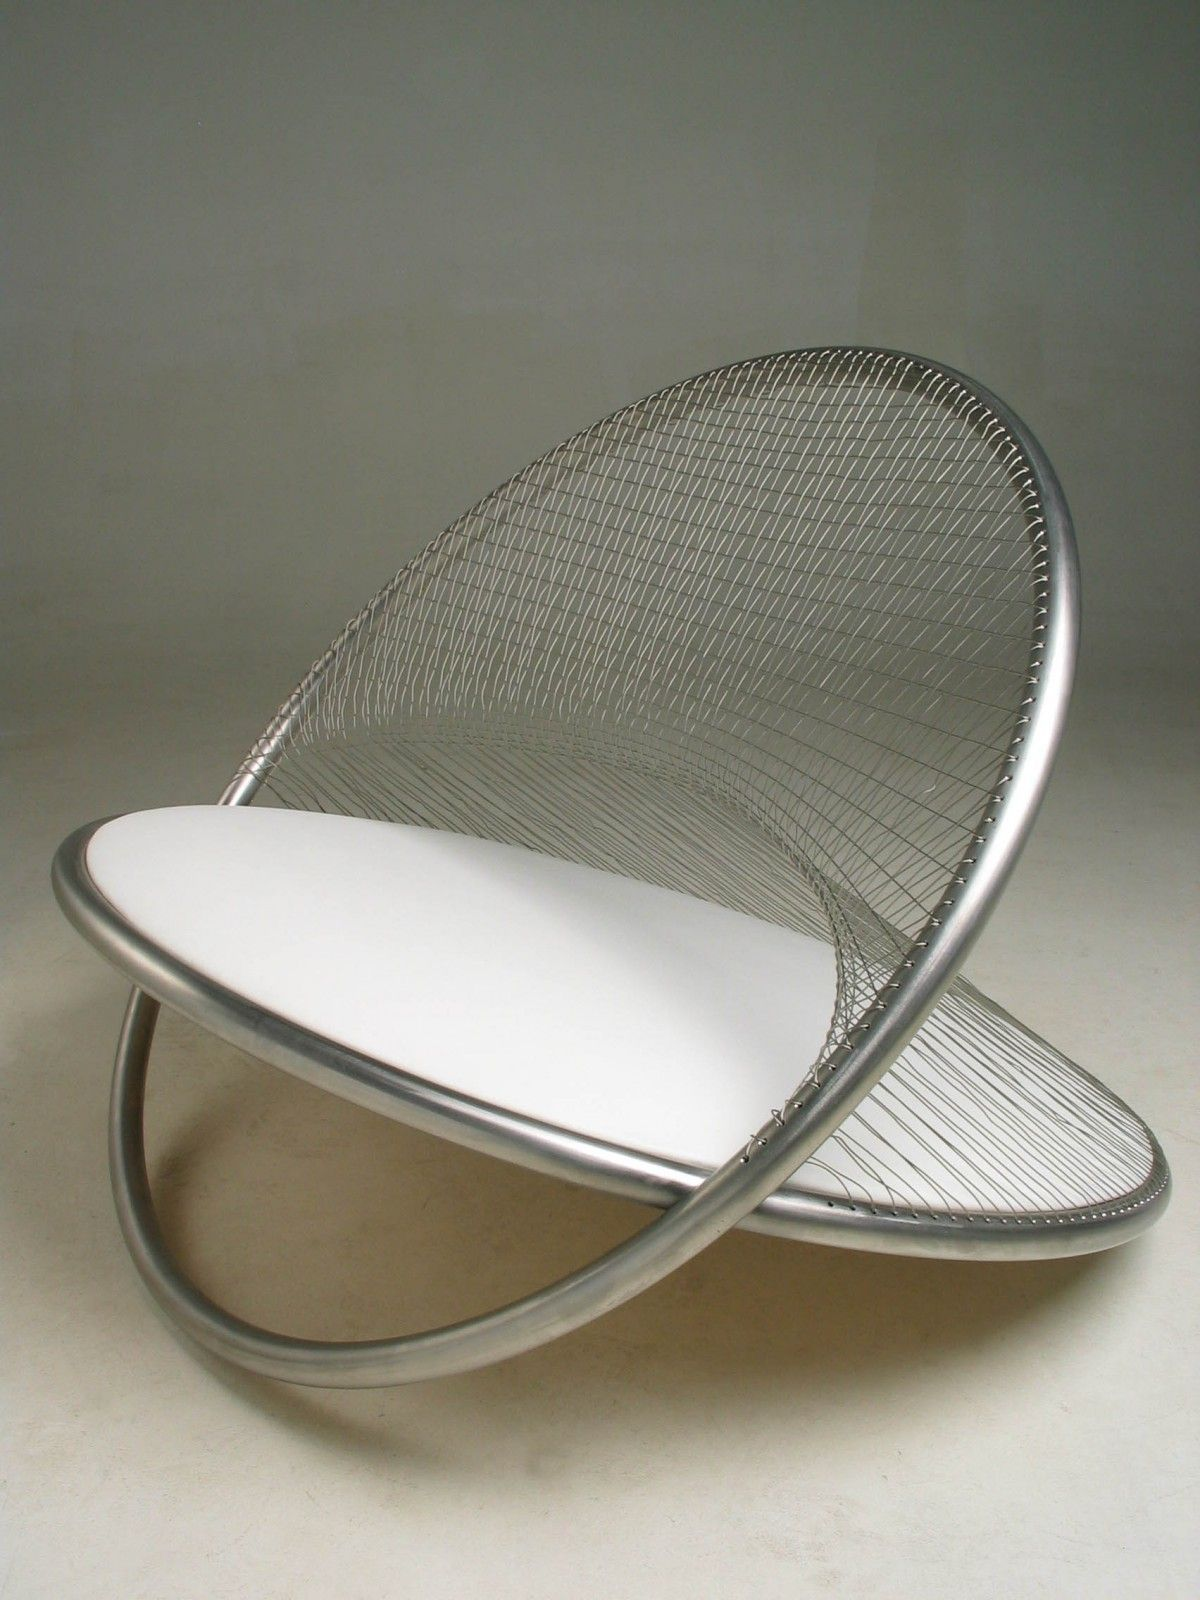 Gyro By Mathew Harding 2004 Stainless Steel Tube Weaving And Upholstery Seat Design Steel Furniture Stainless Steel Tubing [ 1600 x 1200 Pixel ]